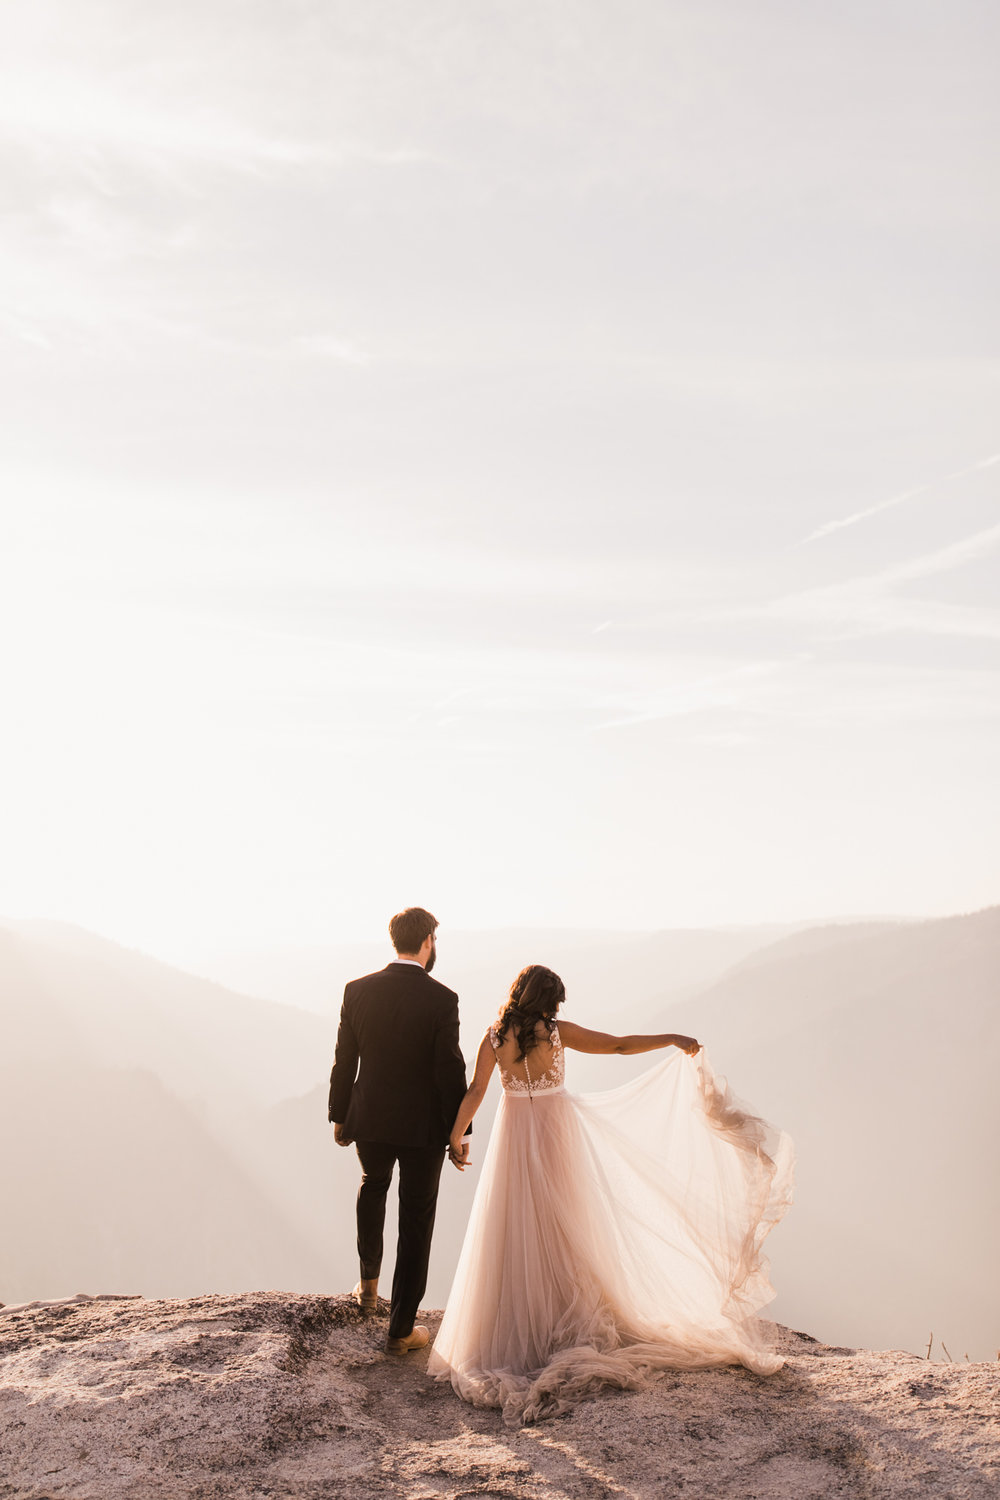 intimate yosemite national park elopement | destination adventure wedding photographers | the hearnes adventure photography | www.thehearnes.com